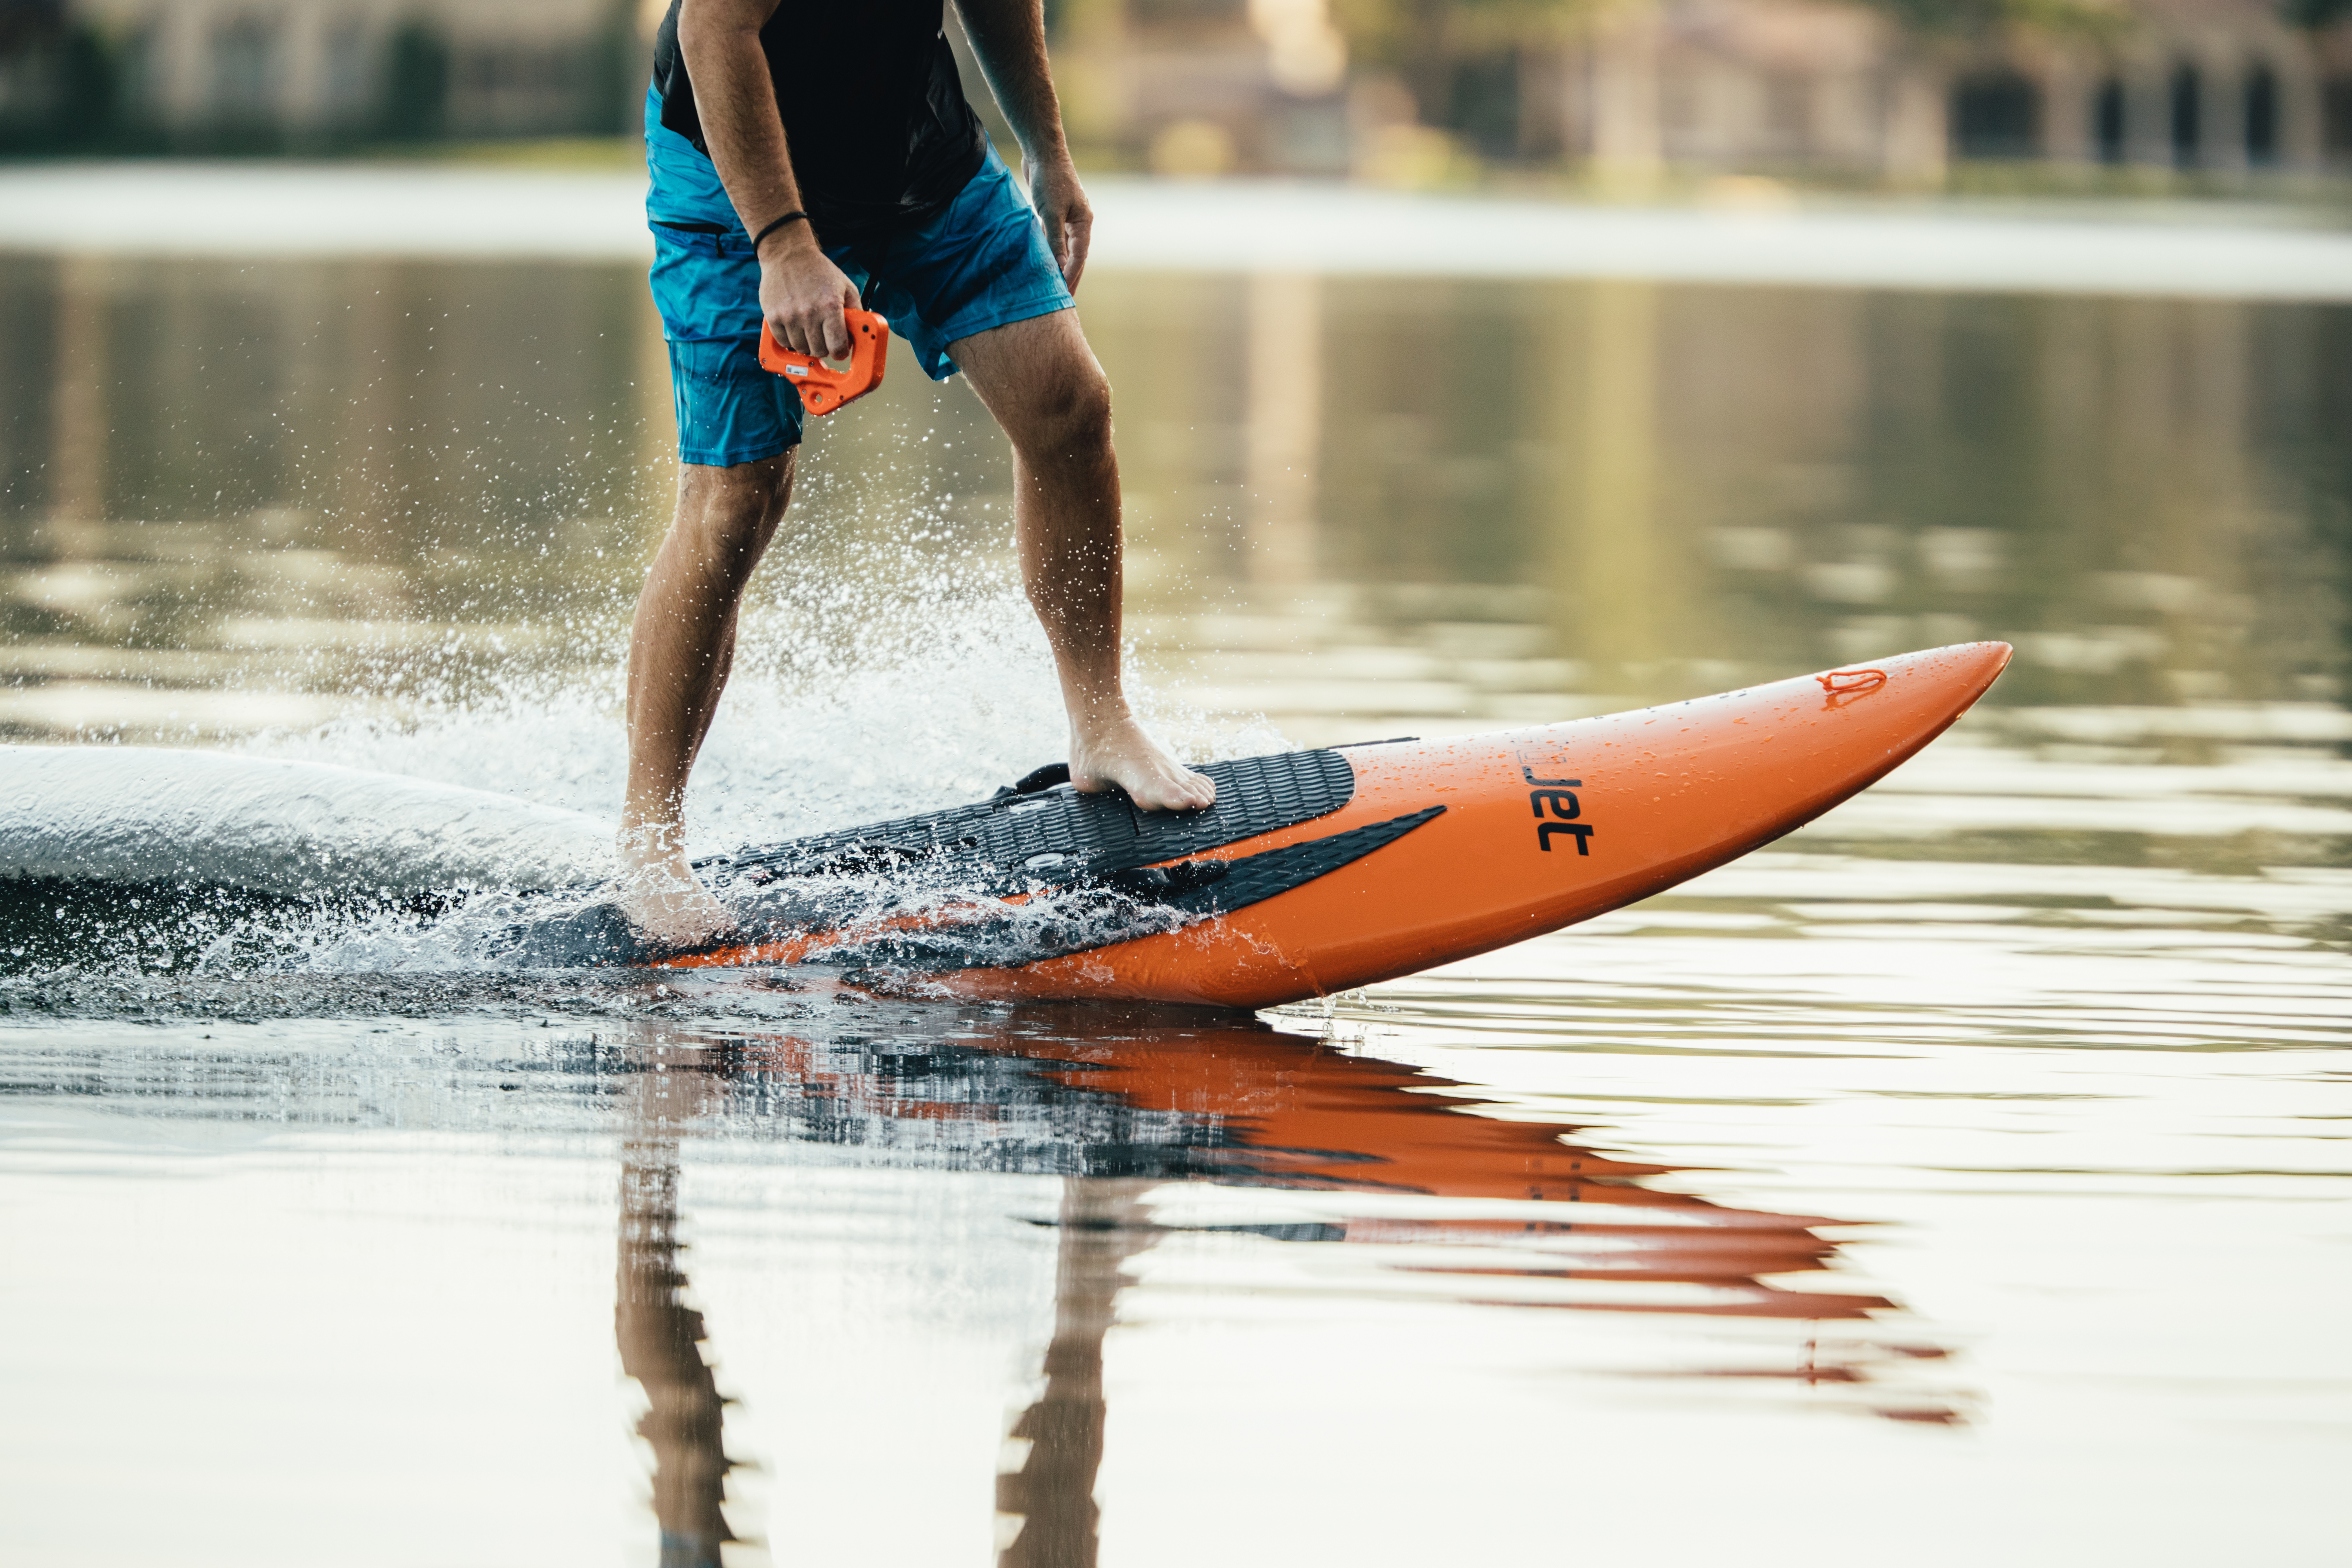 No need to hit the beach to surf, you can make your own waves with the YuJet Surfer electric jetboard